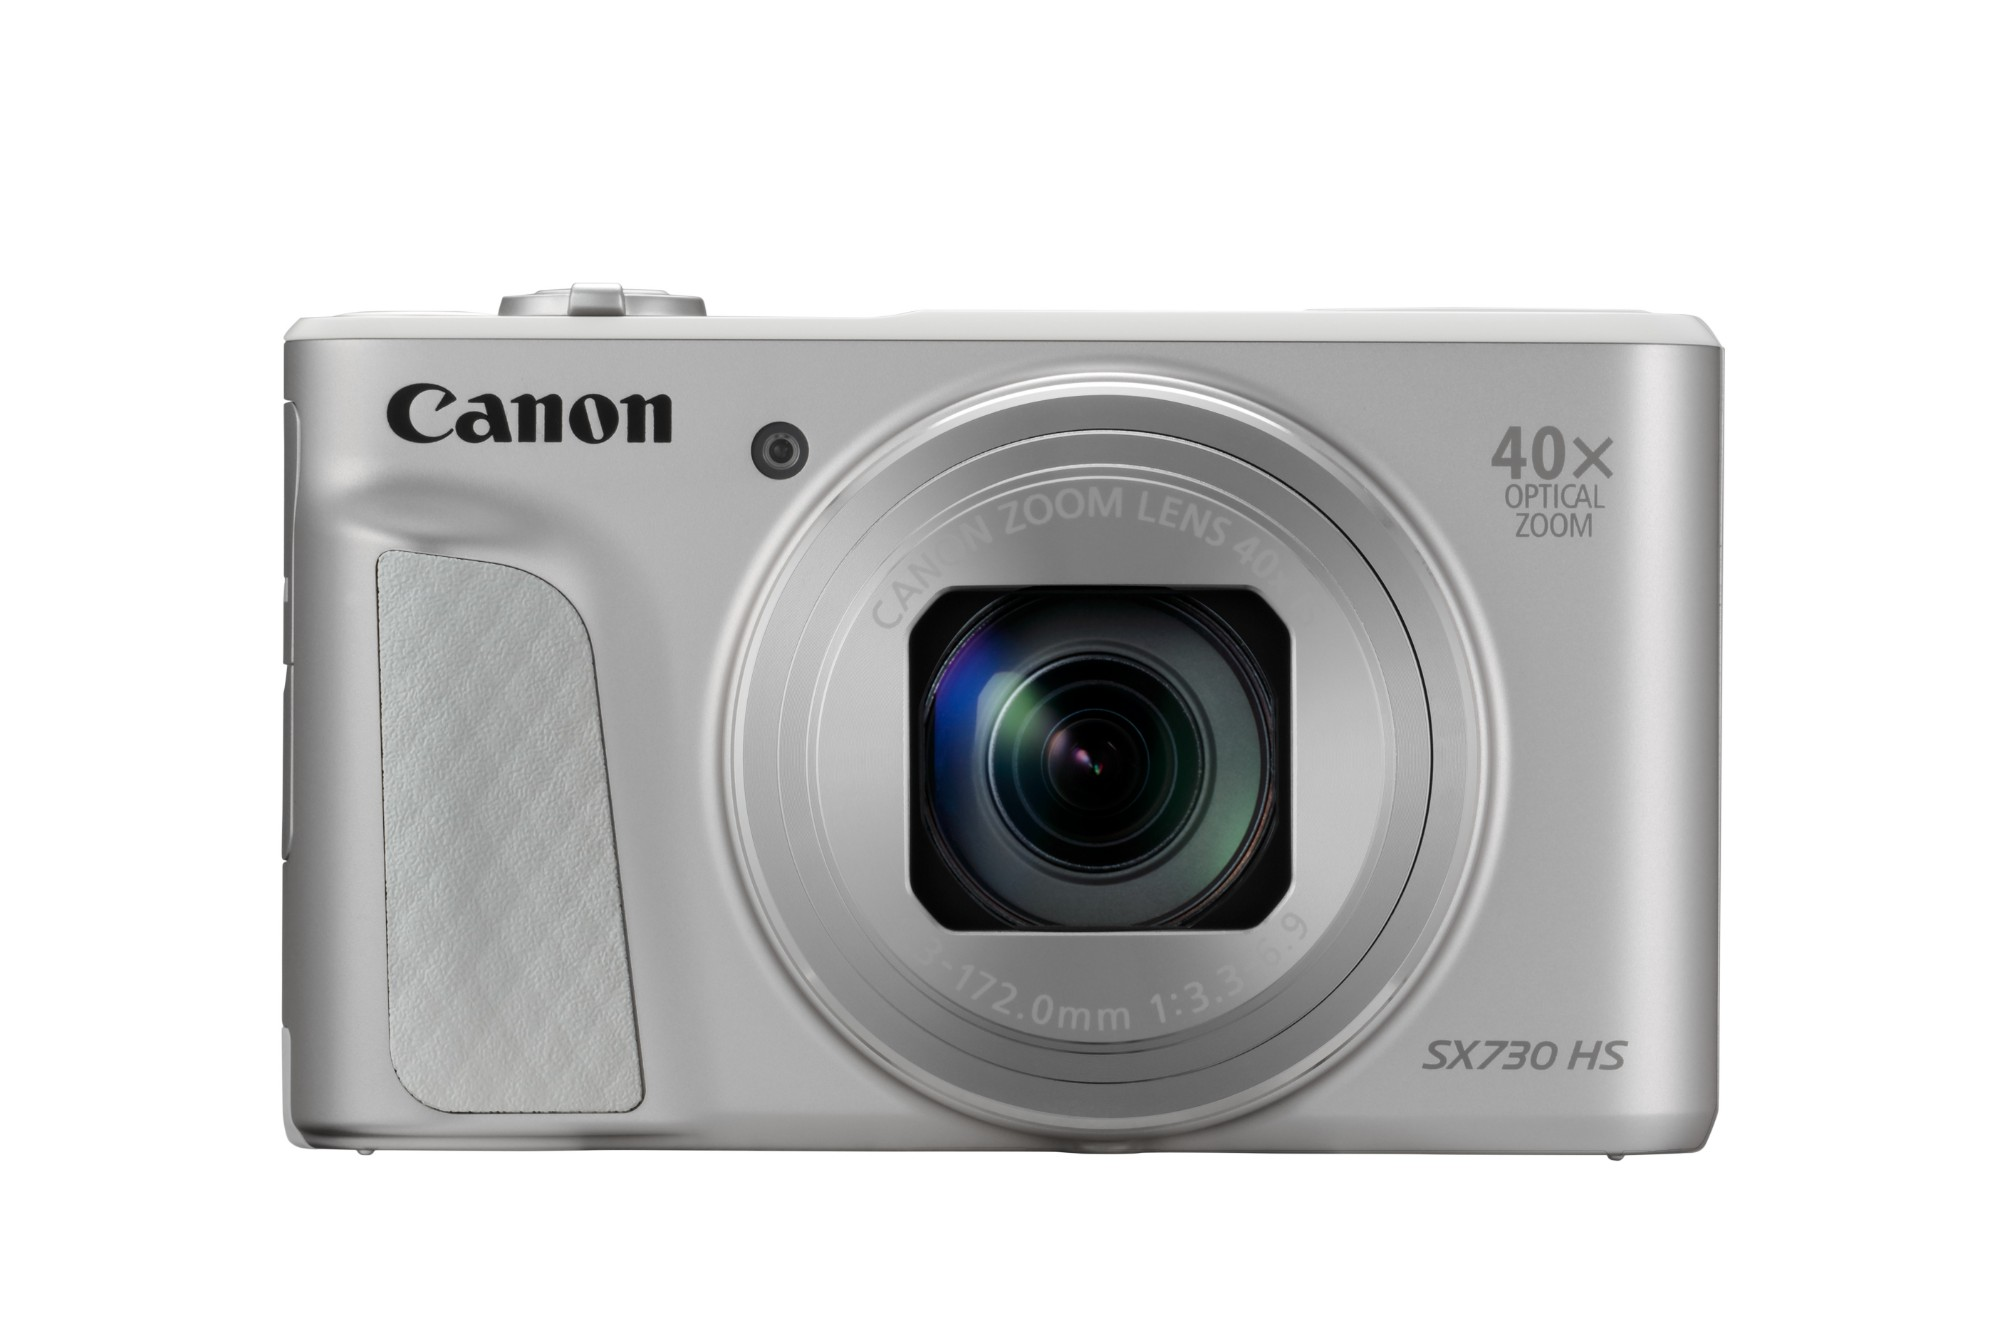 Powershot Sx730 Hs 20.3mpix 40xopt 3.0in LCD White